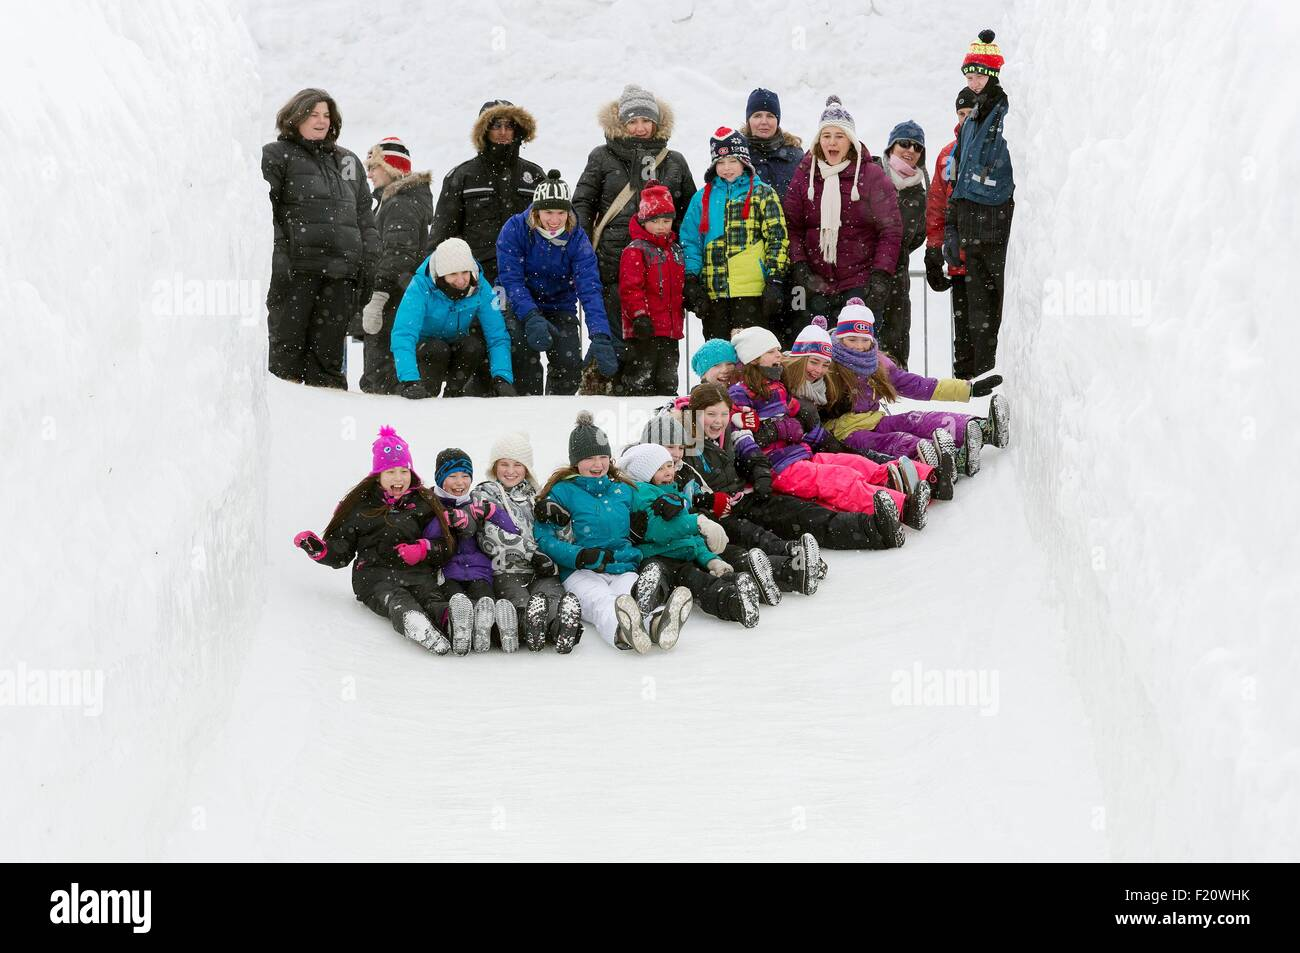 Canada, Quebec province, Outaouais, Gatineau, the Winterlude winter event, slips in Jacques Cartier Park - Stock Image